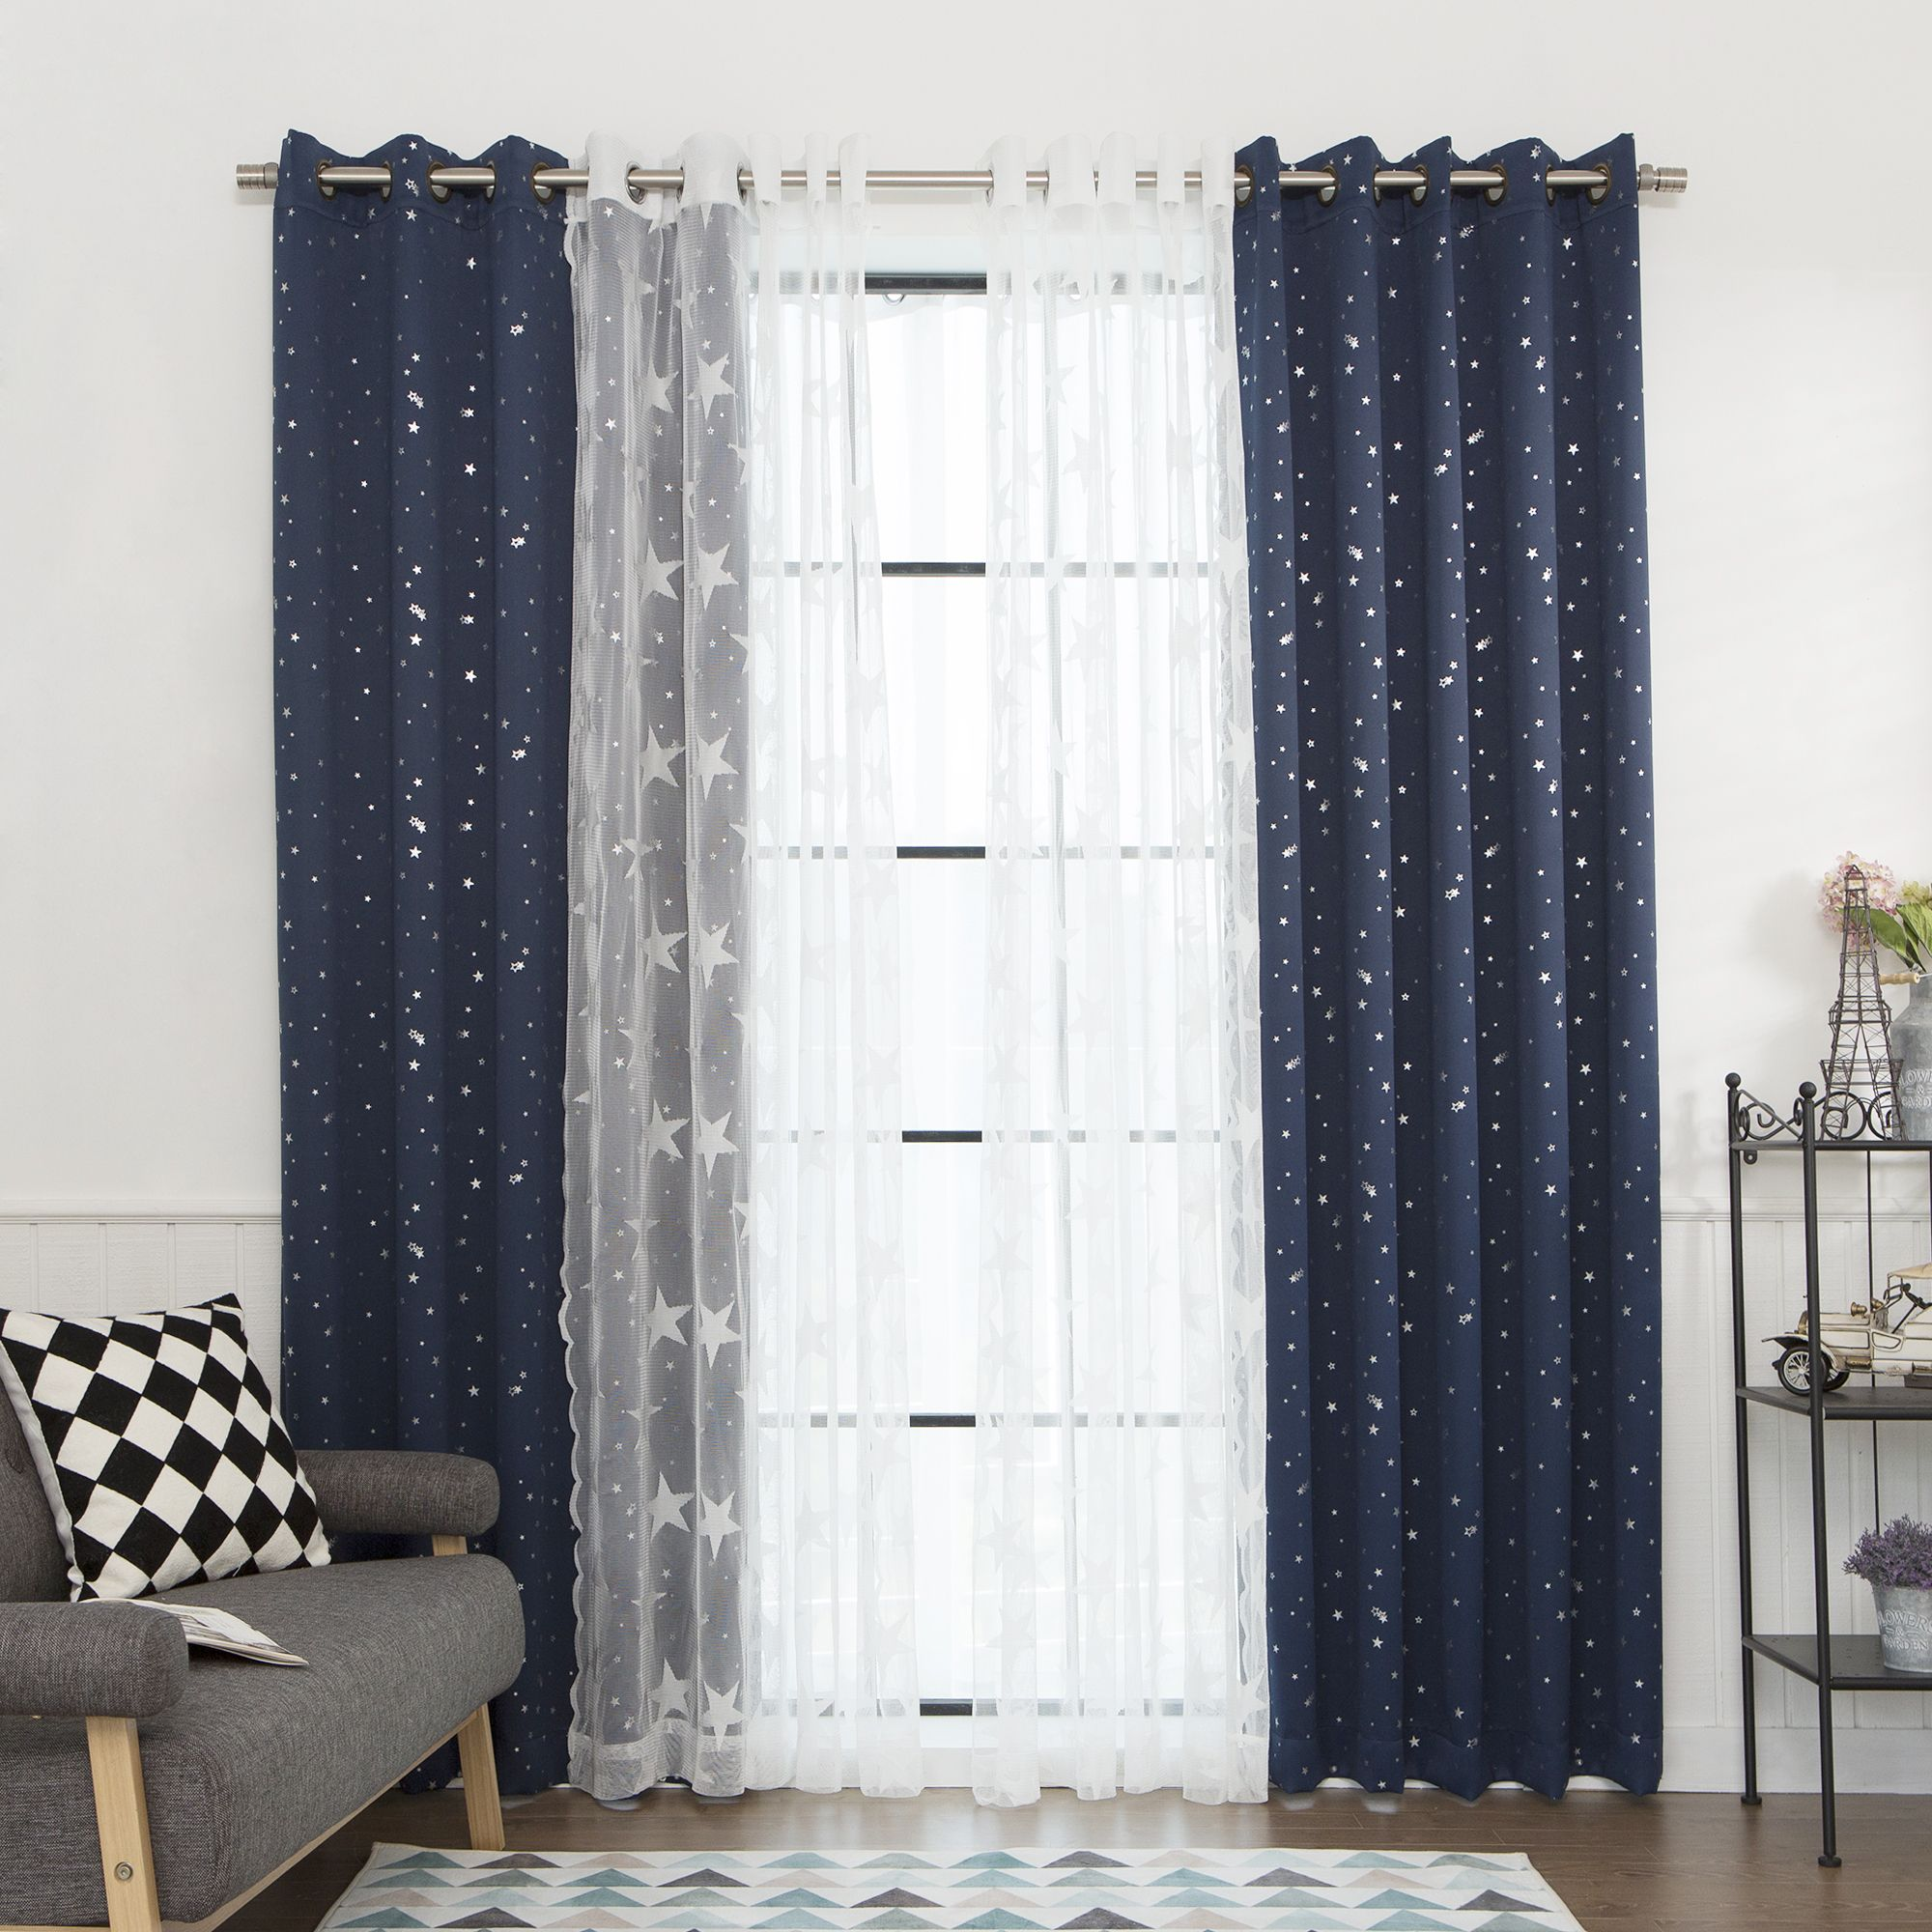 Overstock Com Online Shopping Bedding Furniture Electronics Jewelry Clothing More Star Wars Themed Bedroom Home Panel Curtains